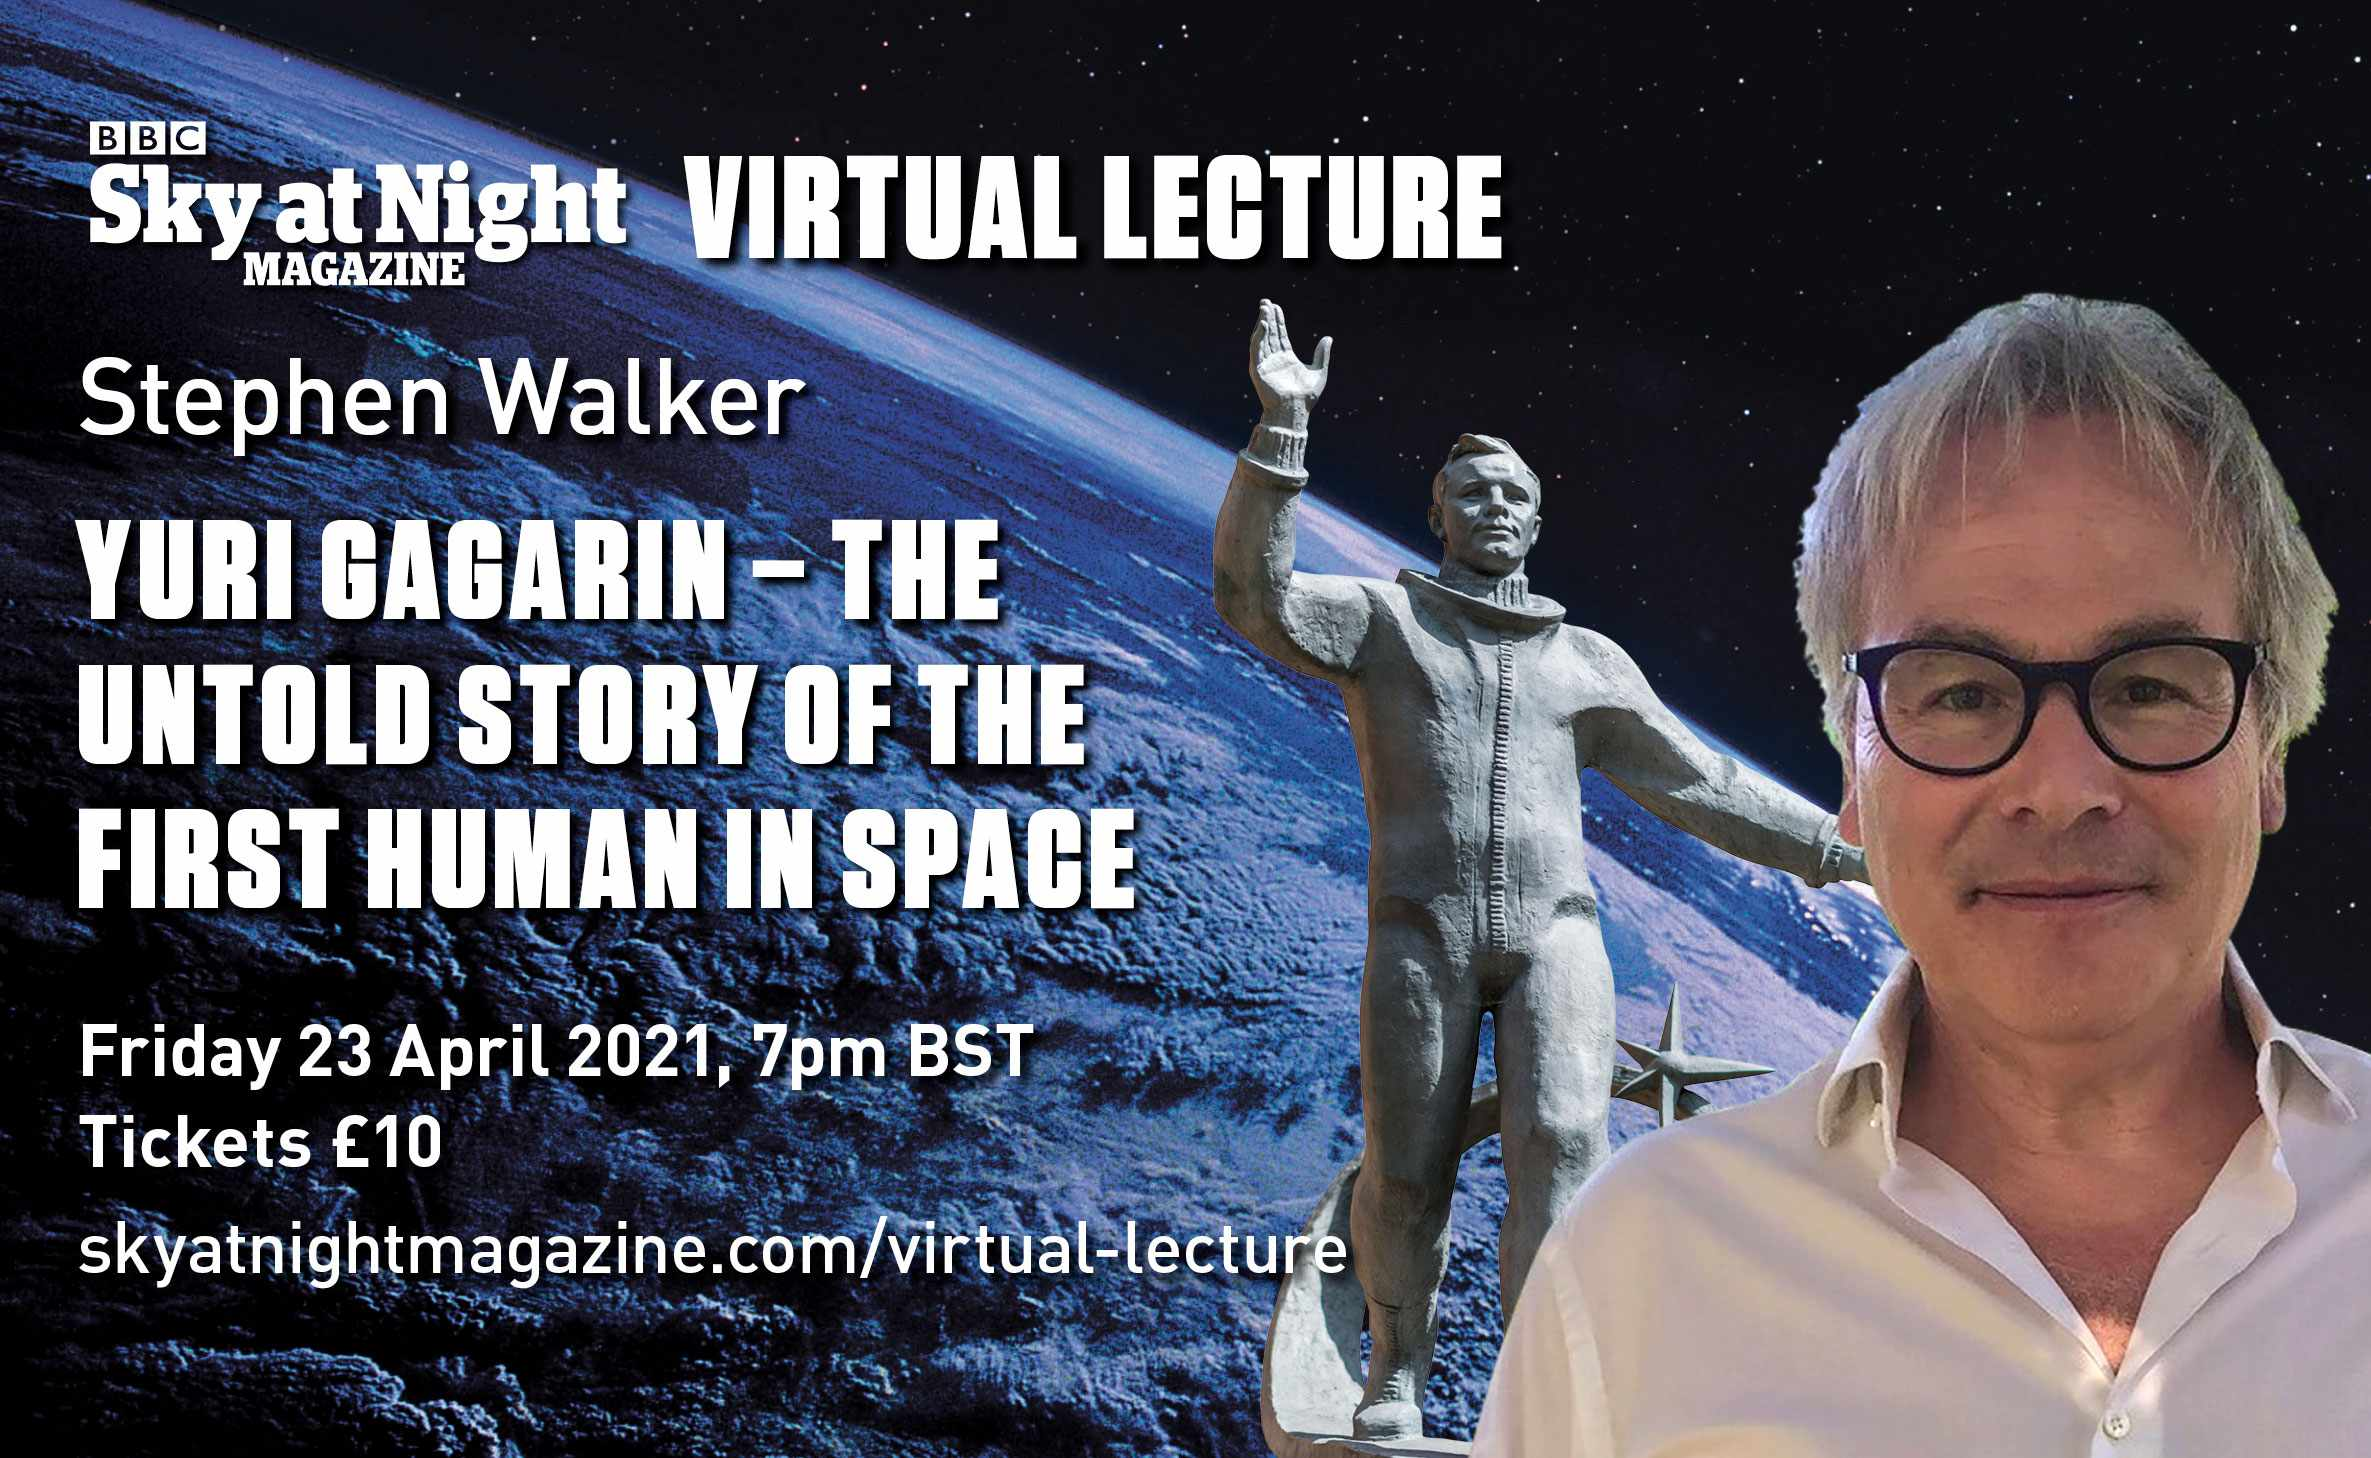 BBC Sky at Night Magazine Yuri Gagarin Steven Walker webinar